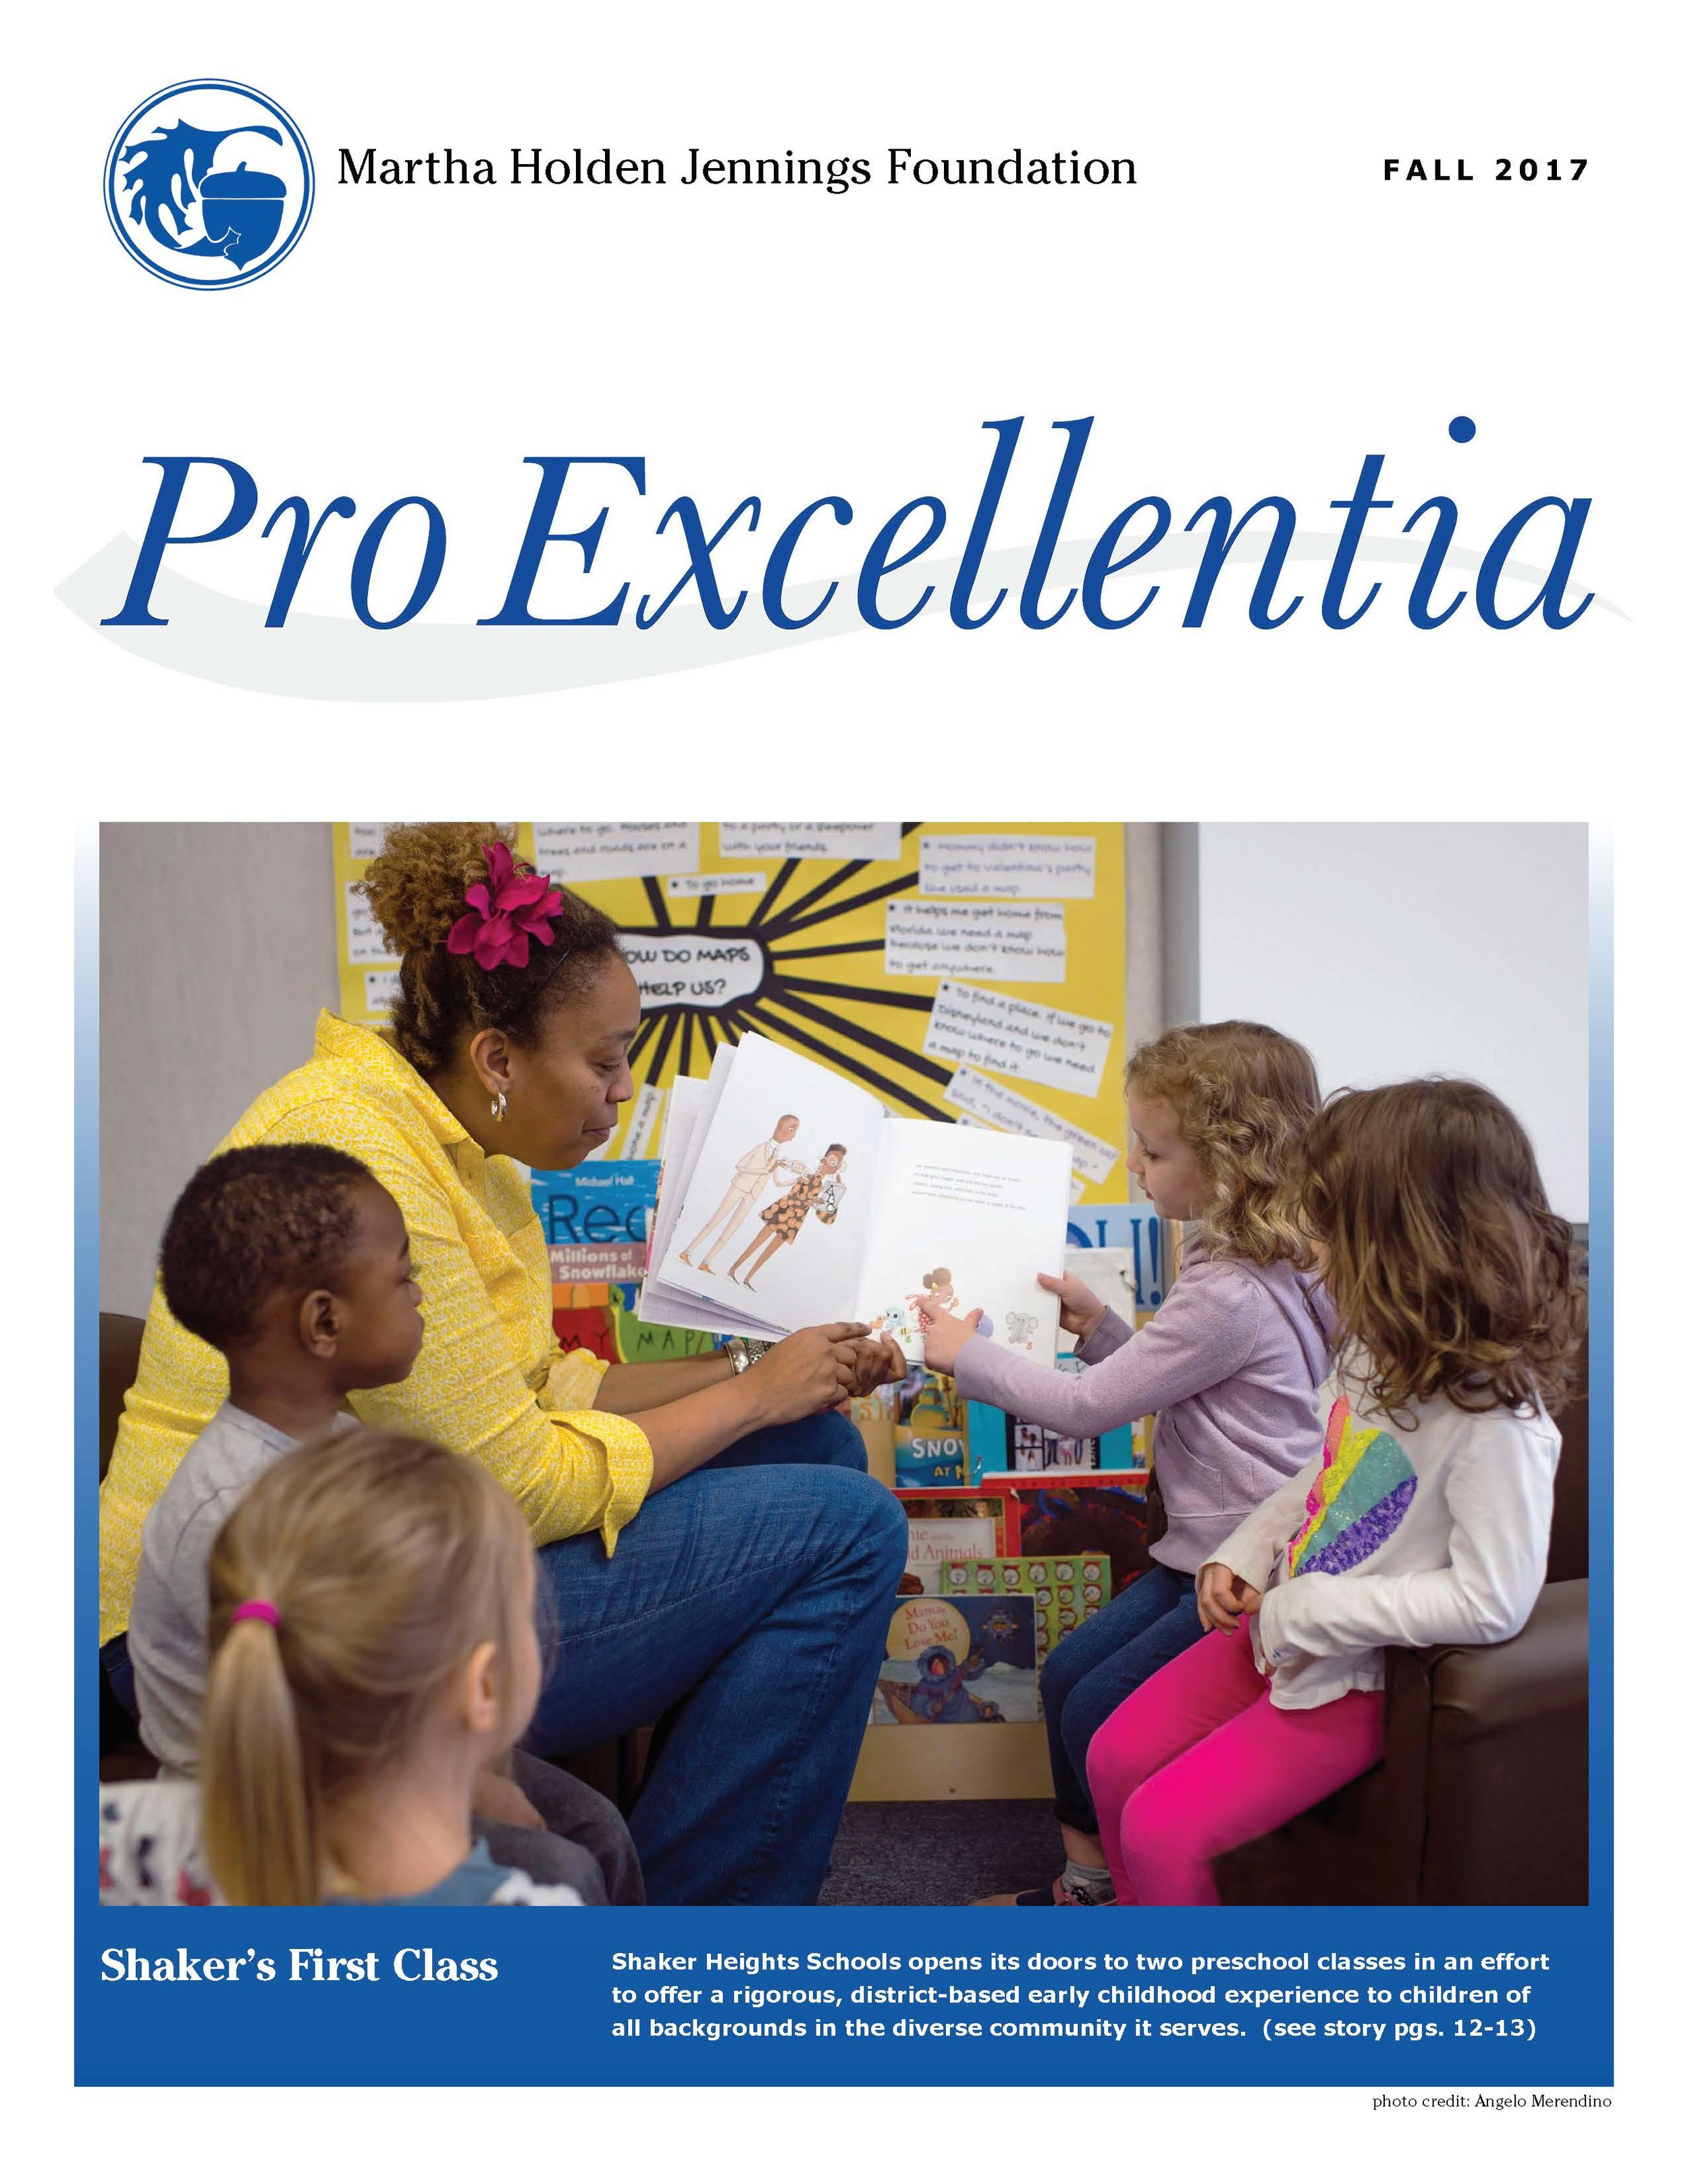 The Fall 2017 issue of our ProExcellentia Journal